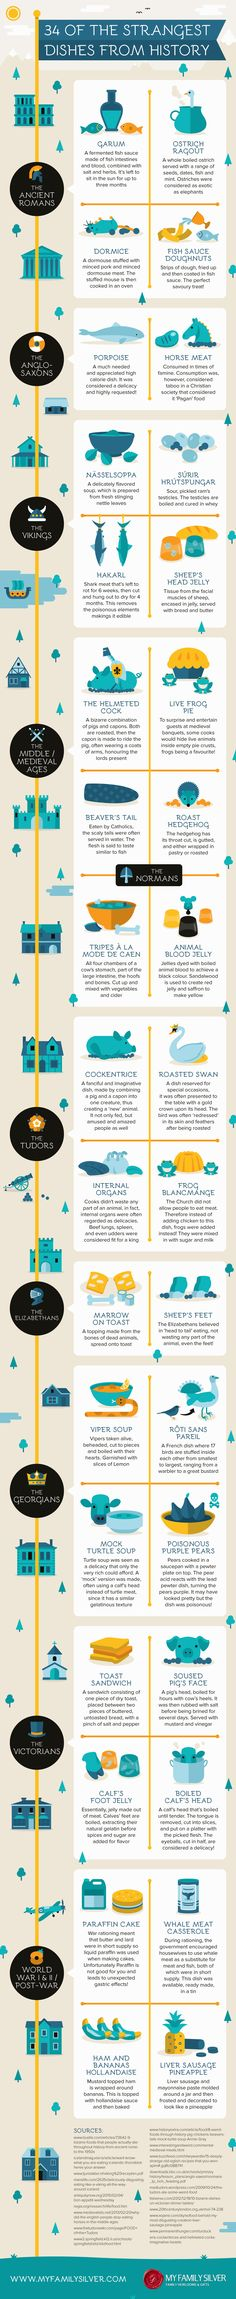 34 of The Strangest Dishes From History #Infographic #Food #History